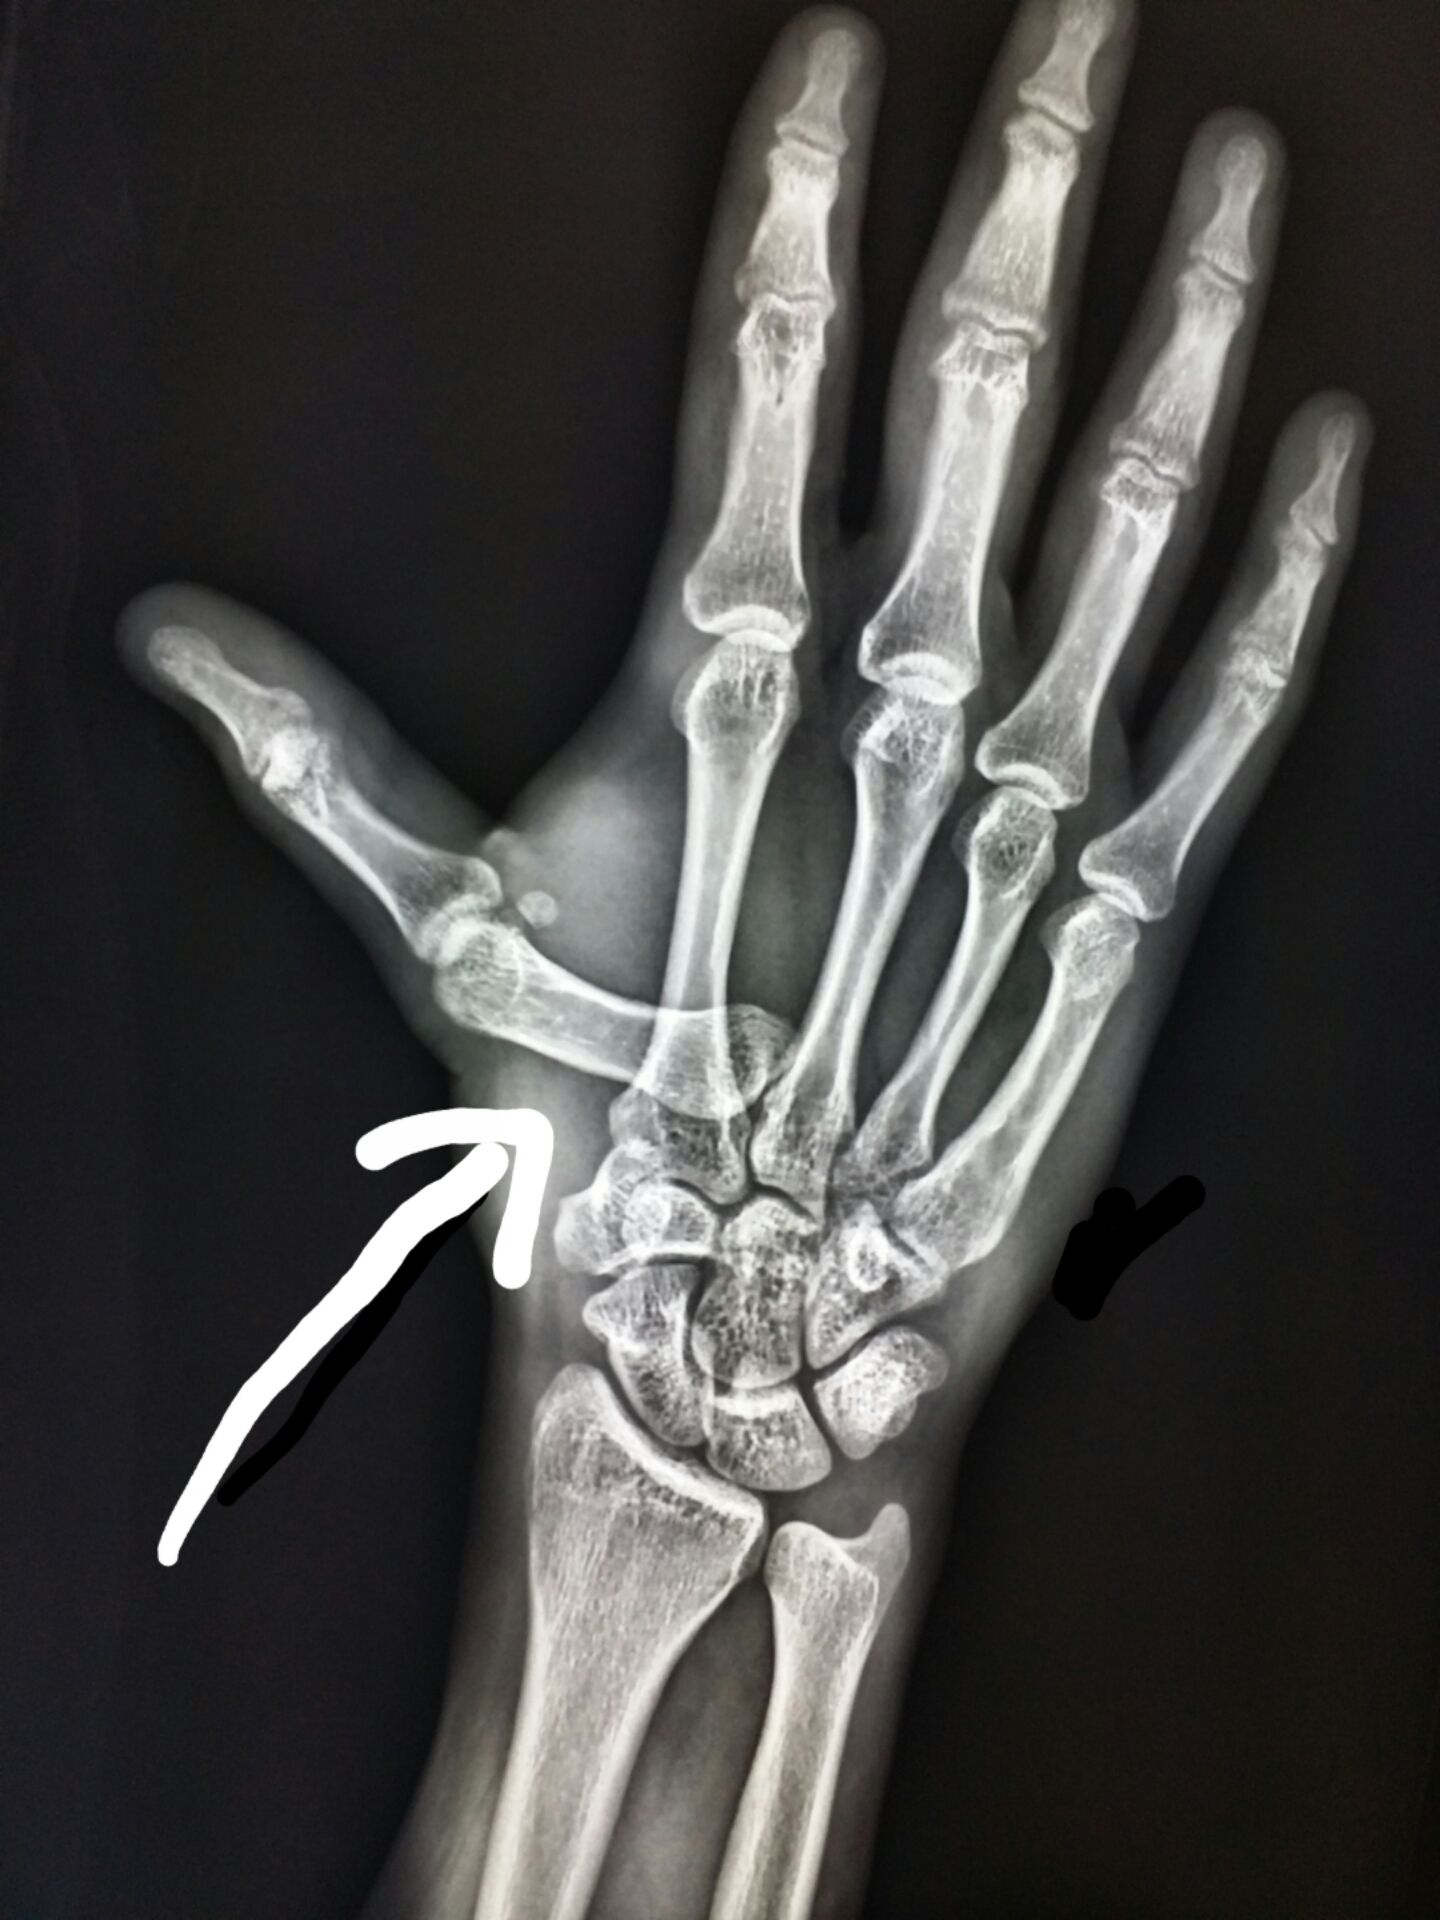 This is an x-ray of a hand. Luxación carpo -metacarpiana 1er dedo ...